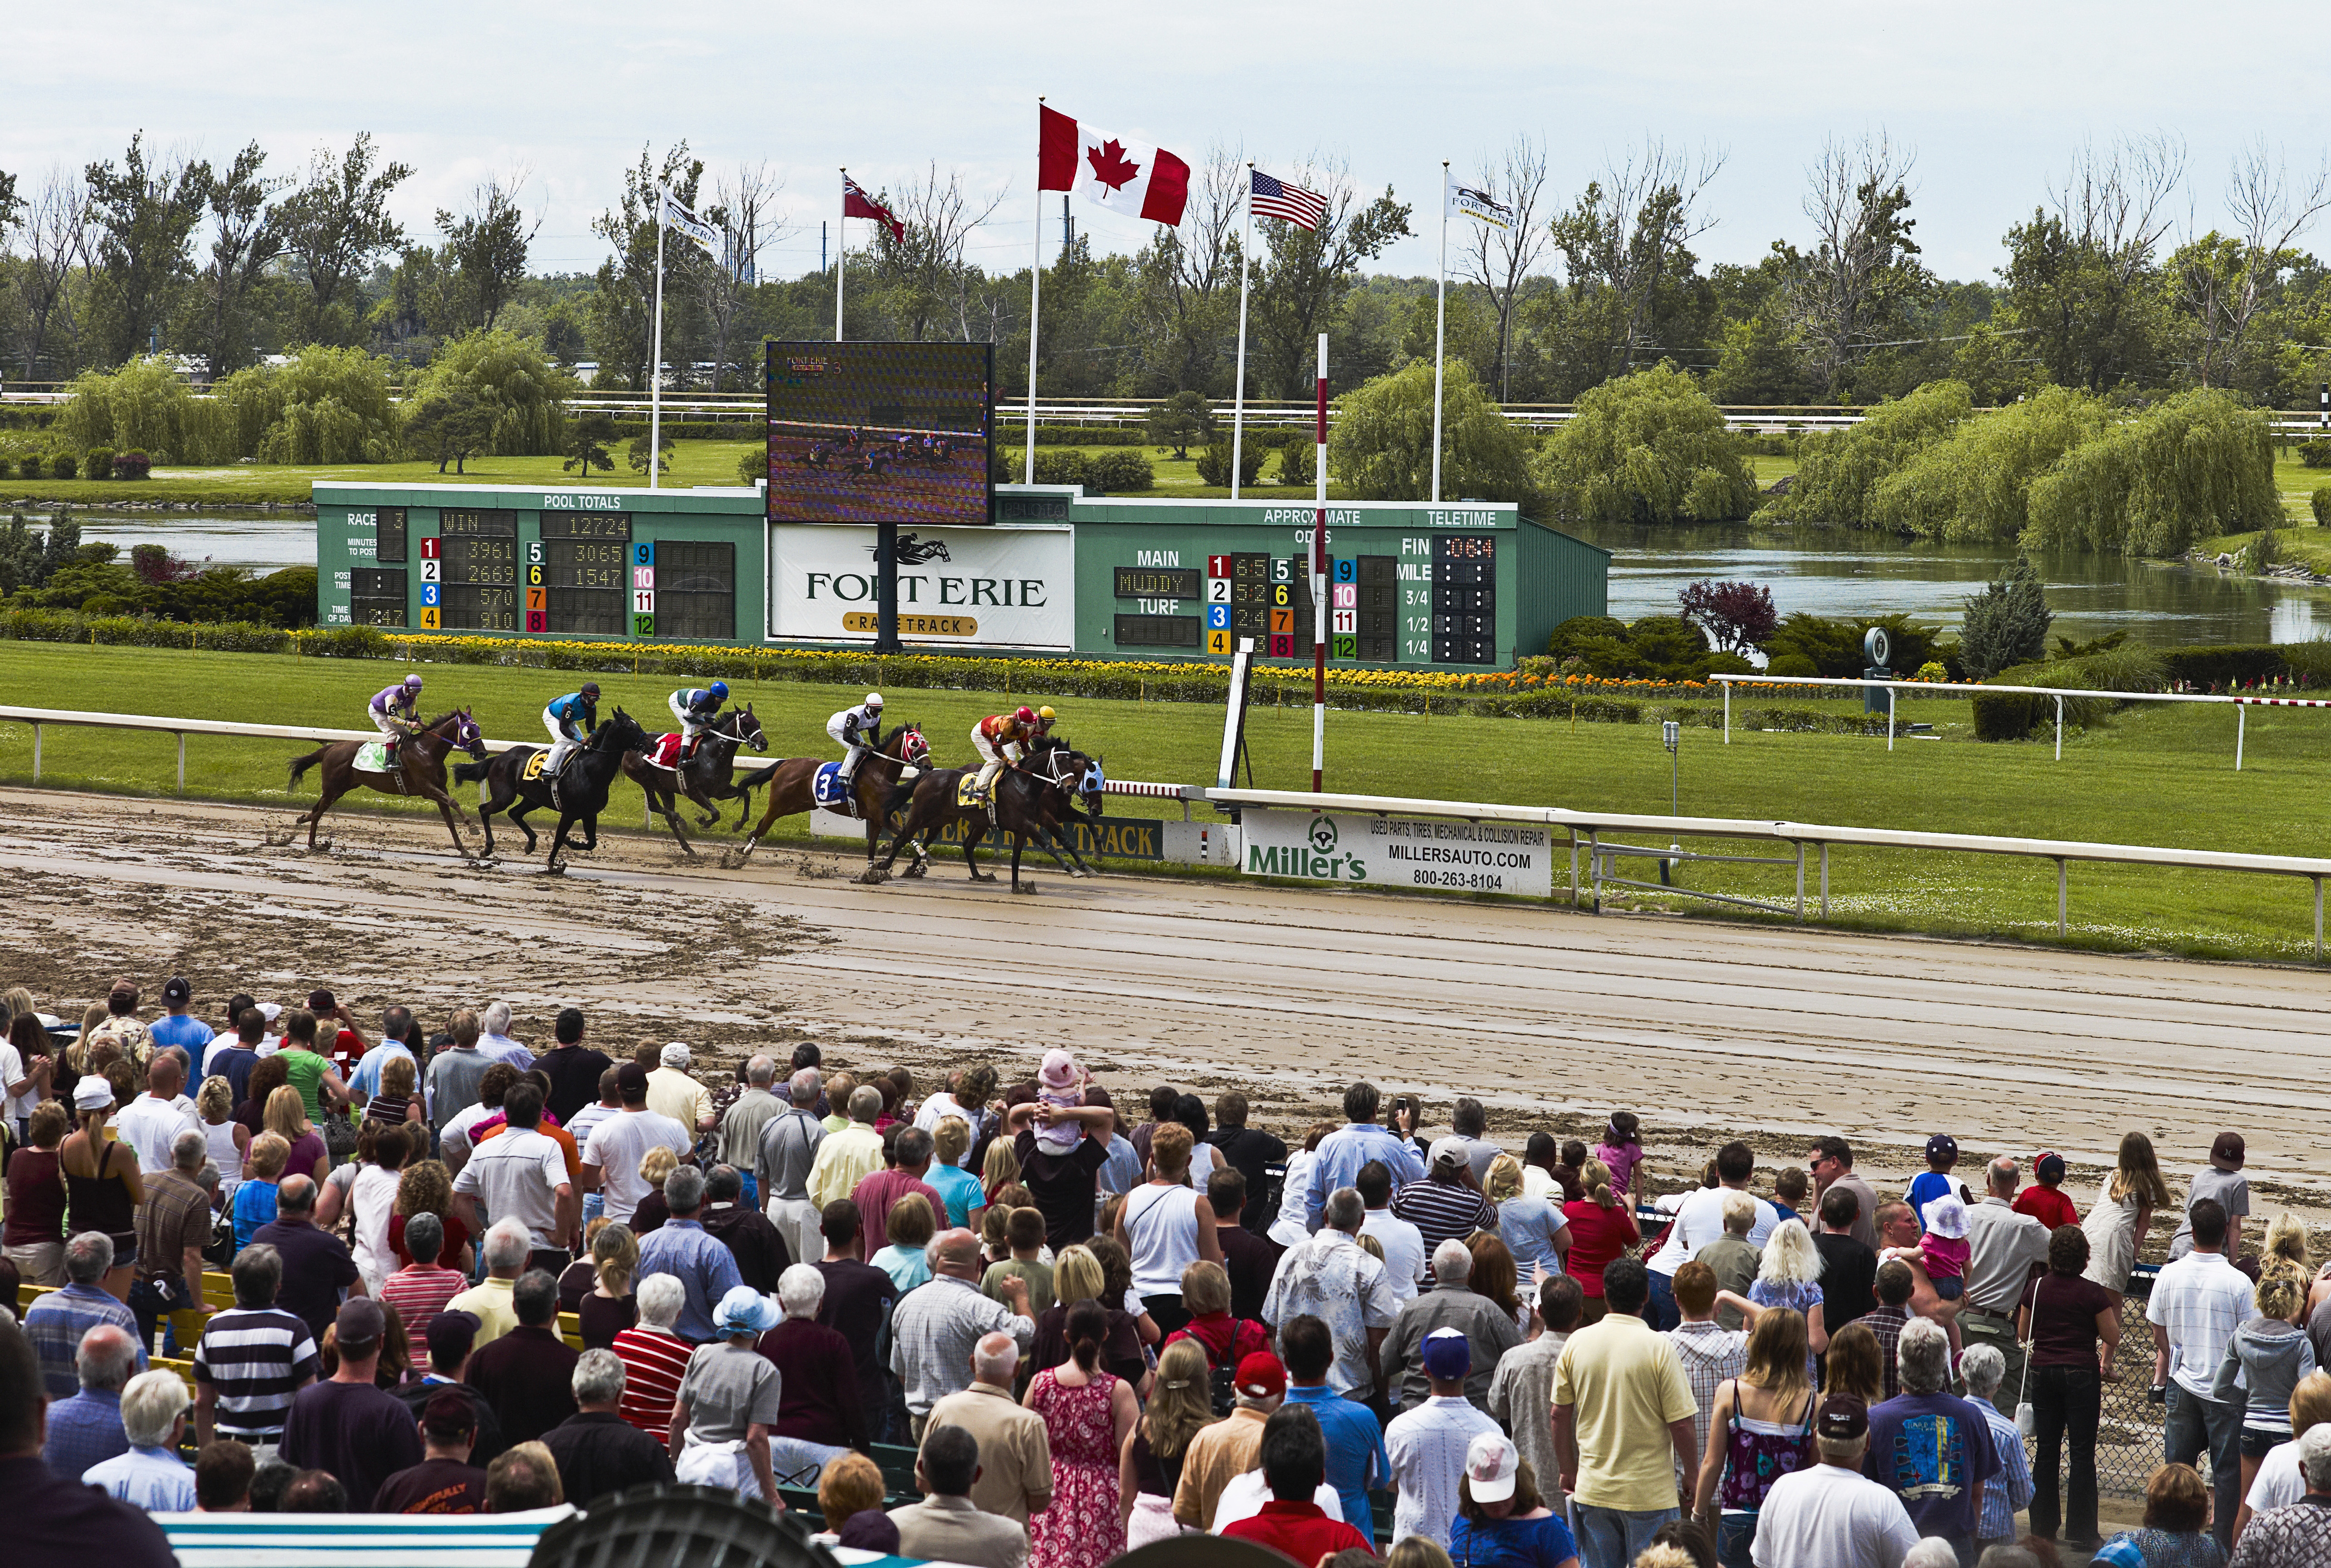 Canada, Ontario, Fort Erie, Race Track. (Photo by: Eye Ubiquitous/Universal Images Group via Getty Images)